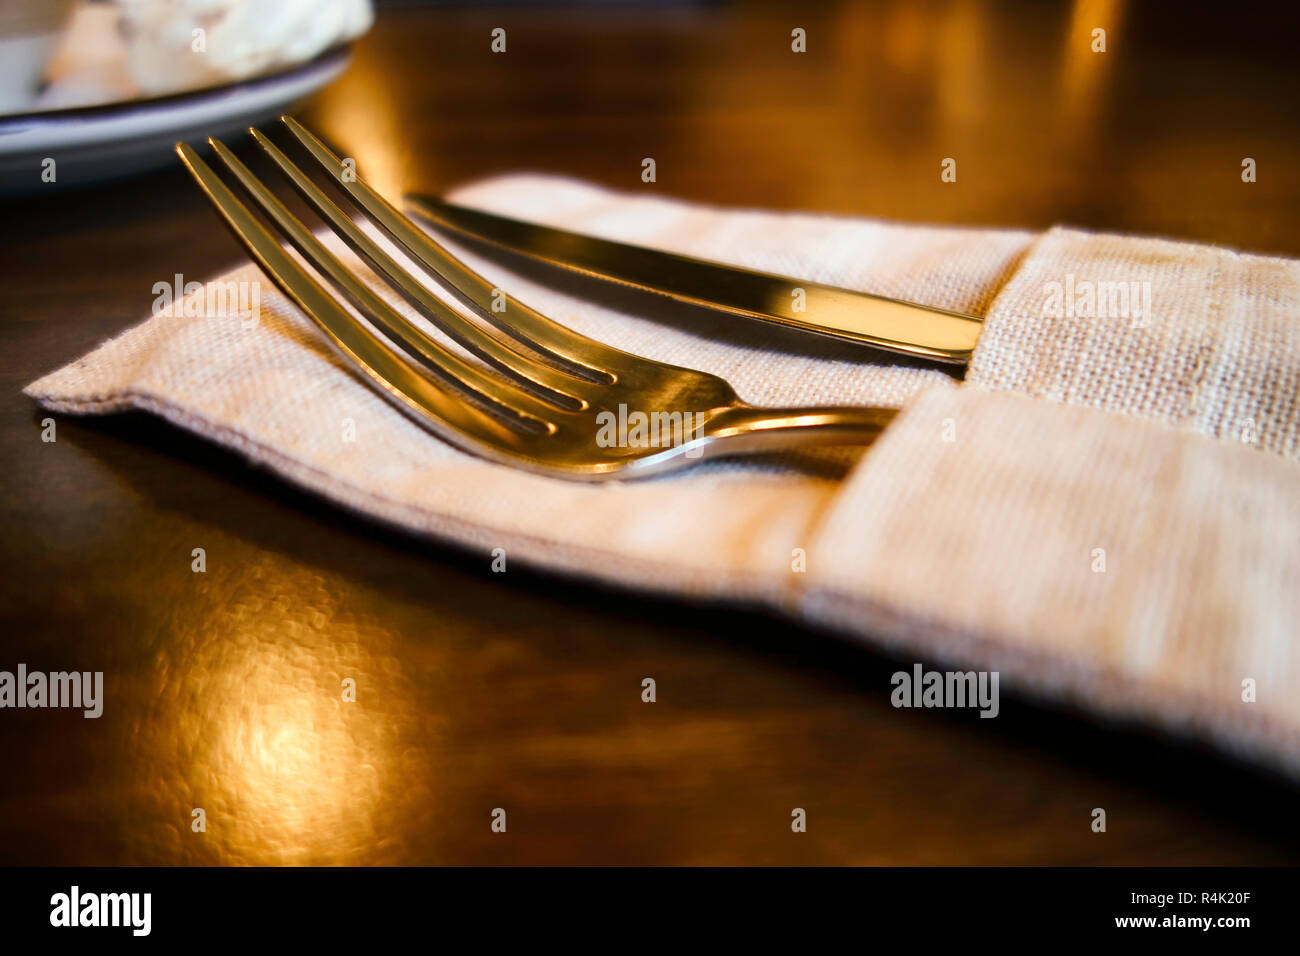 Fork and knife in linen napkin on the table. - Stock Image